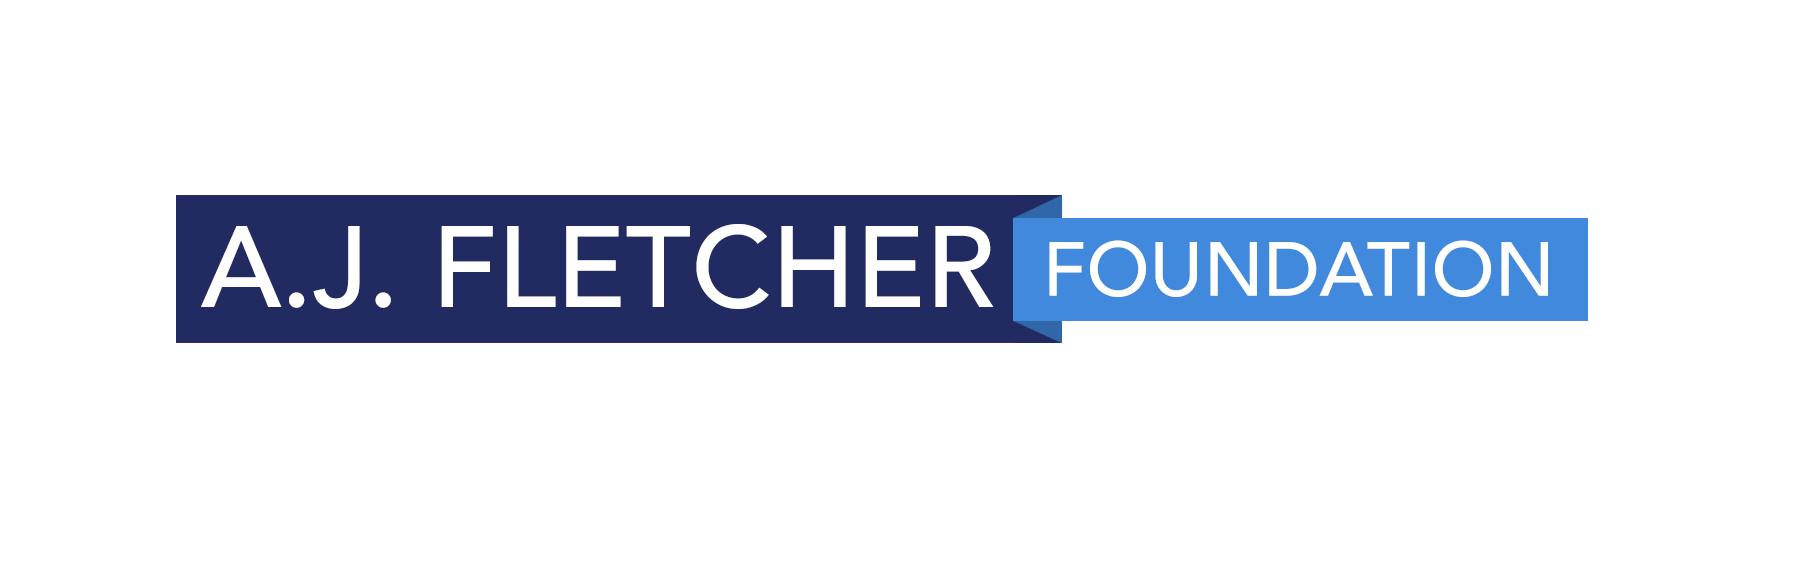 The A.J. Fletcher Foundation